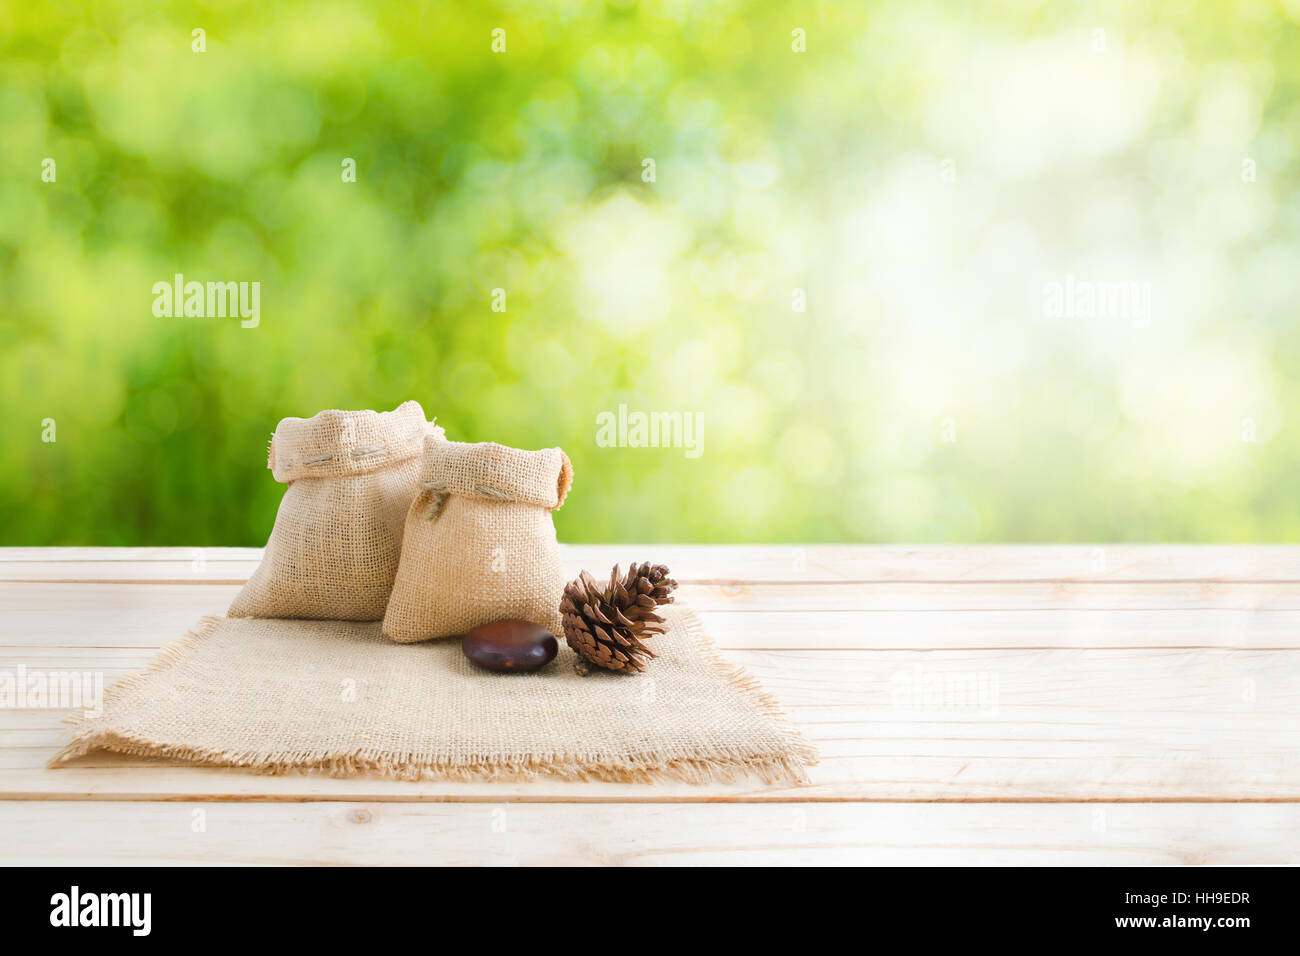 Merveilleux Two Of Blank Hemp Sack Bag And Pine Cones On Wood Table Top Floor Over Blur  Green Bokeh Background With Copy Space